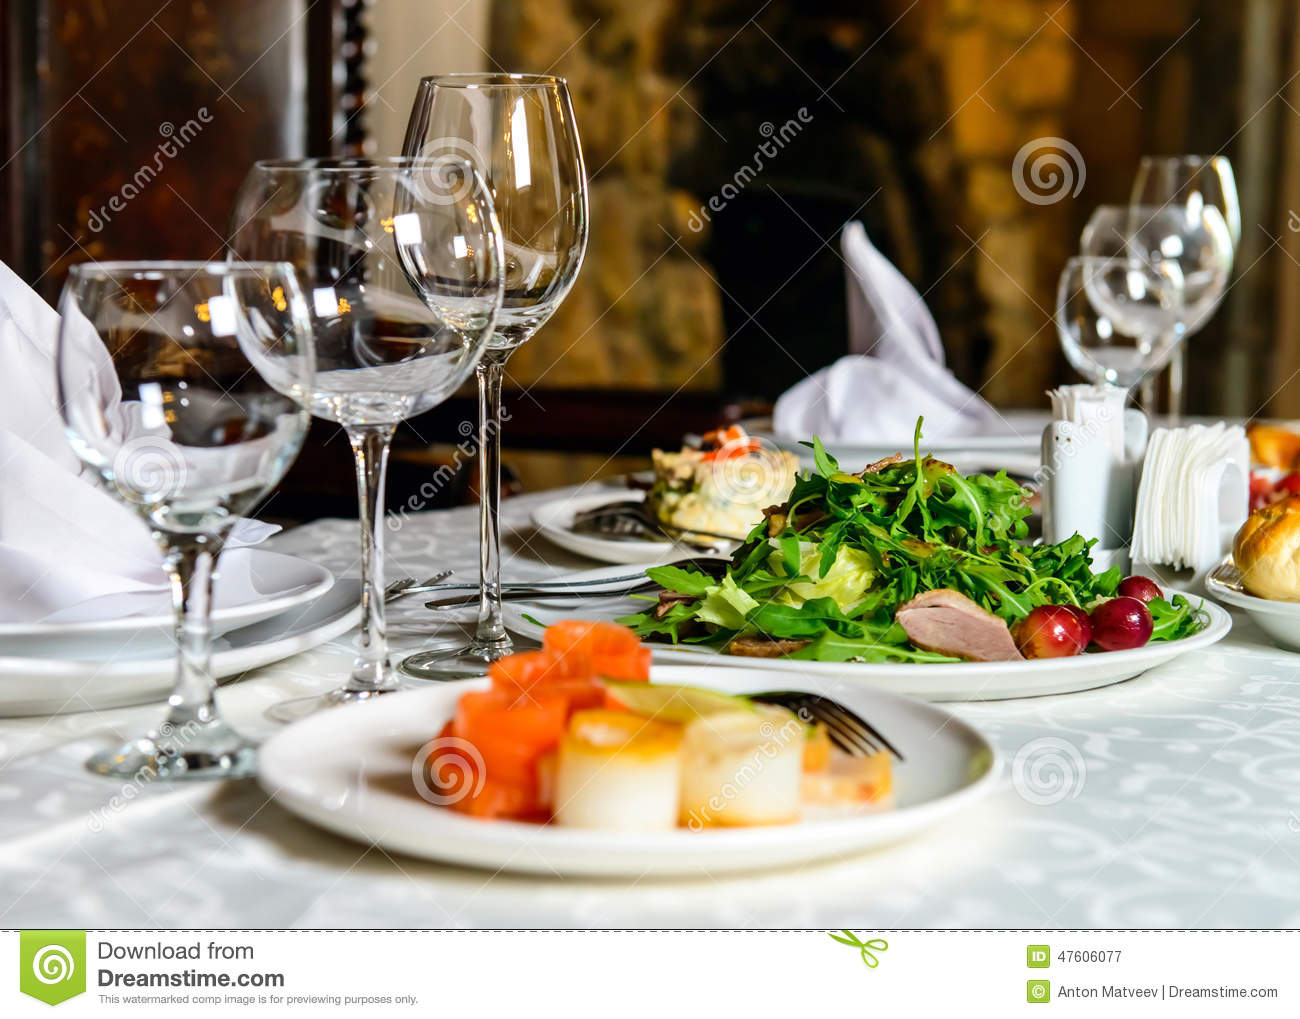 served banquet restaurant table stock image image of dinner dine 47606077. Black Bedroom Furniture Sets. Home Design Ideas